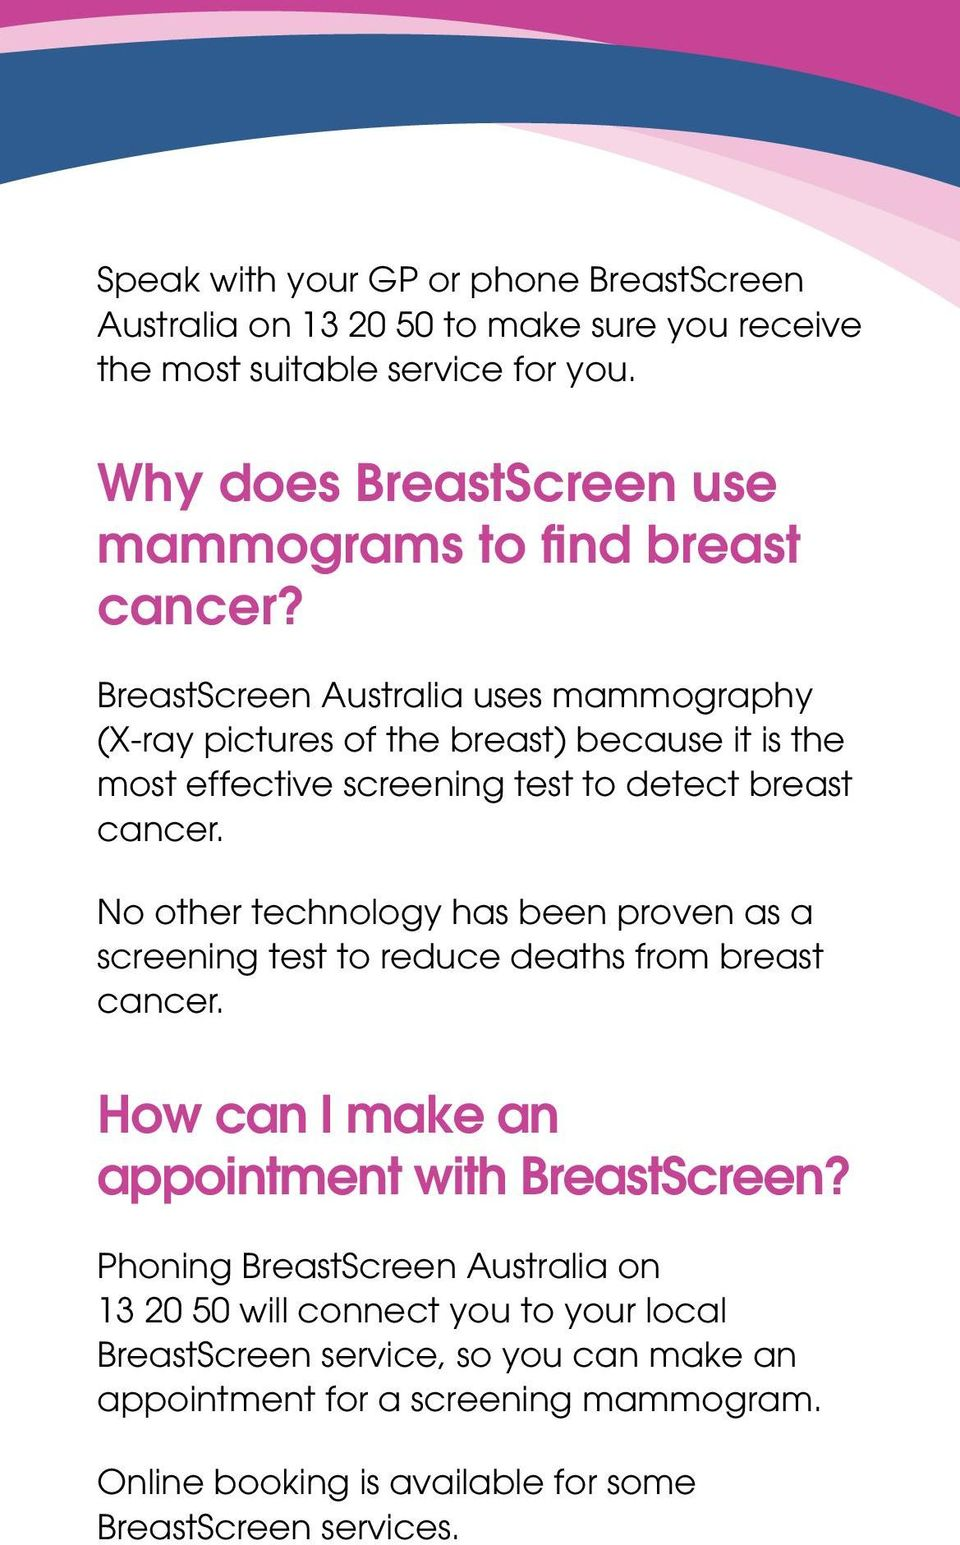 BreastScreen Australia uses mammography (X-ray pictures of the breast) because it is the most effective screening test to detect breast cancer.